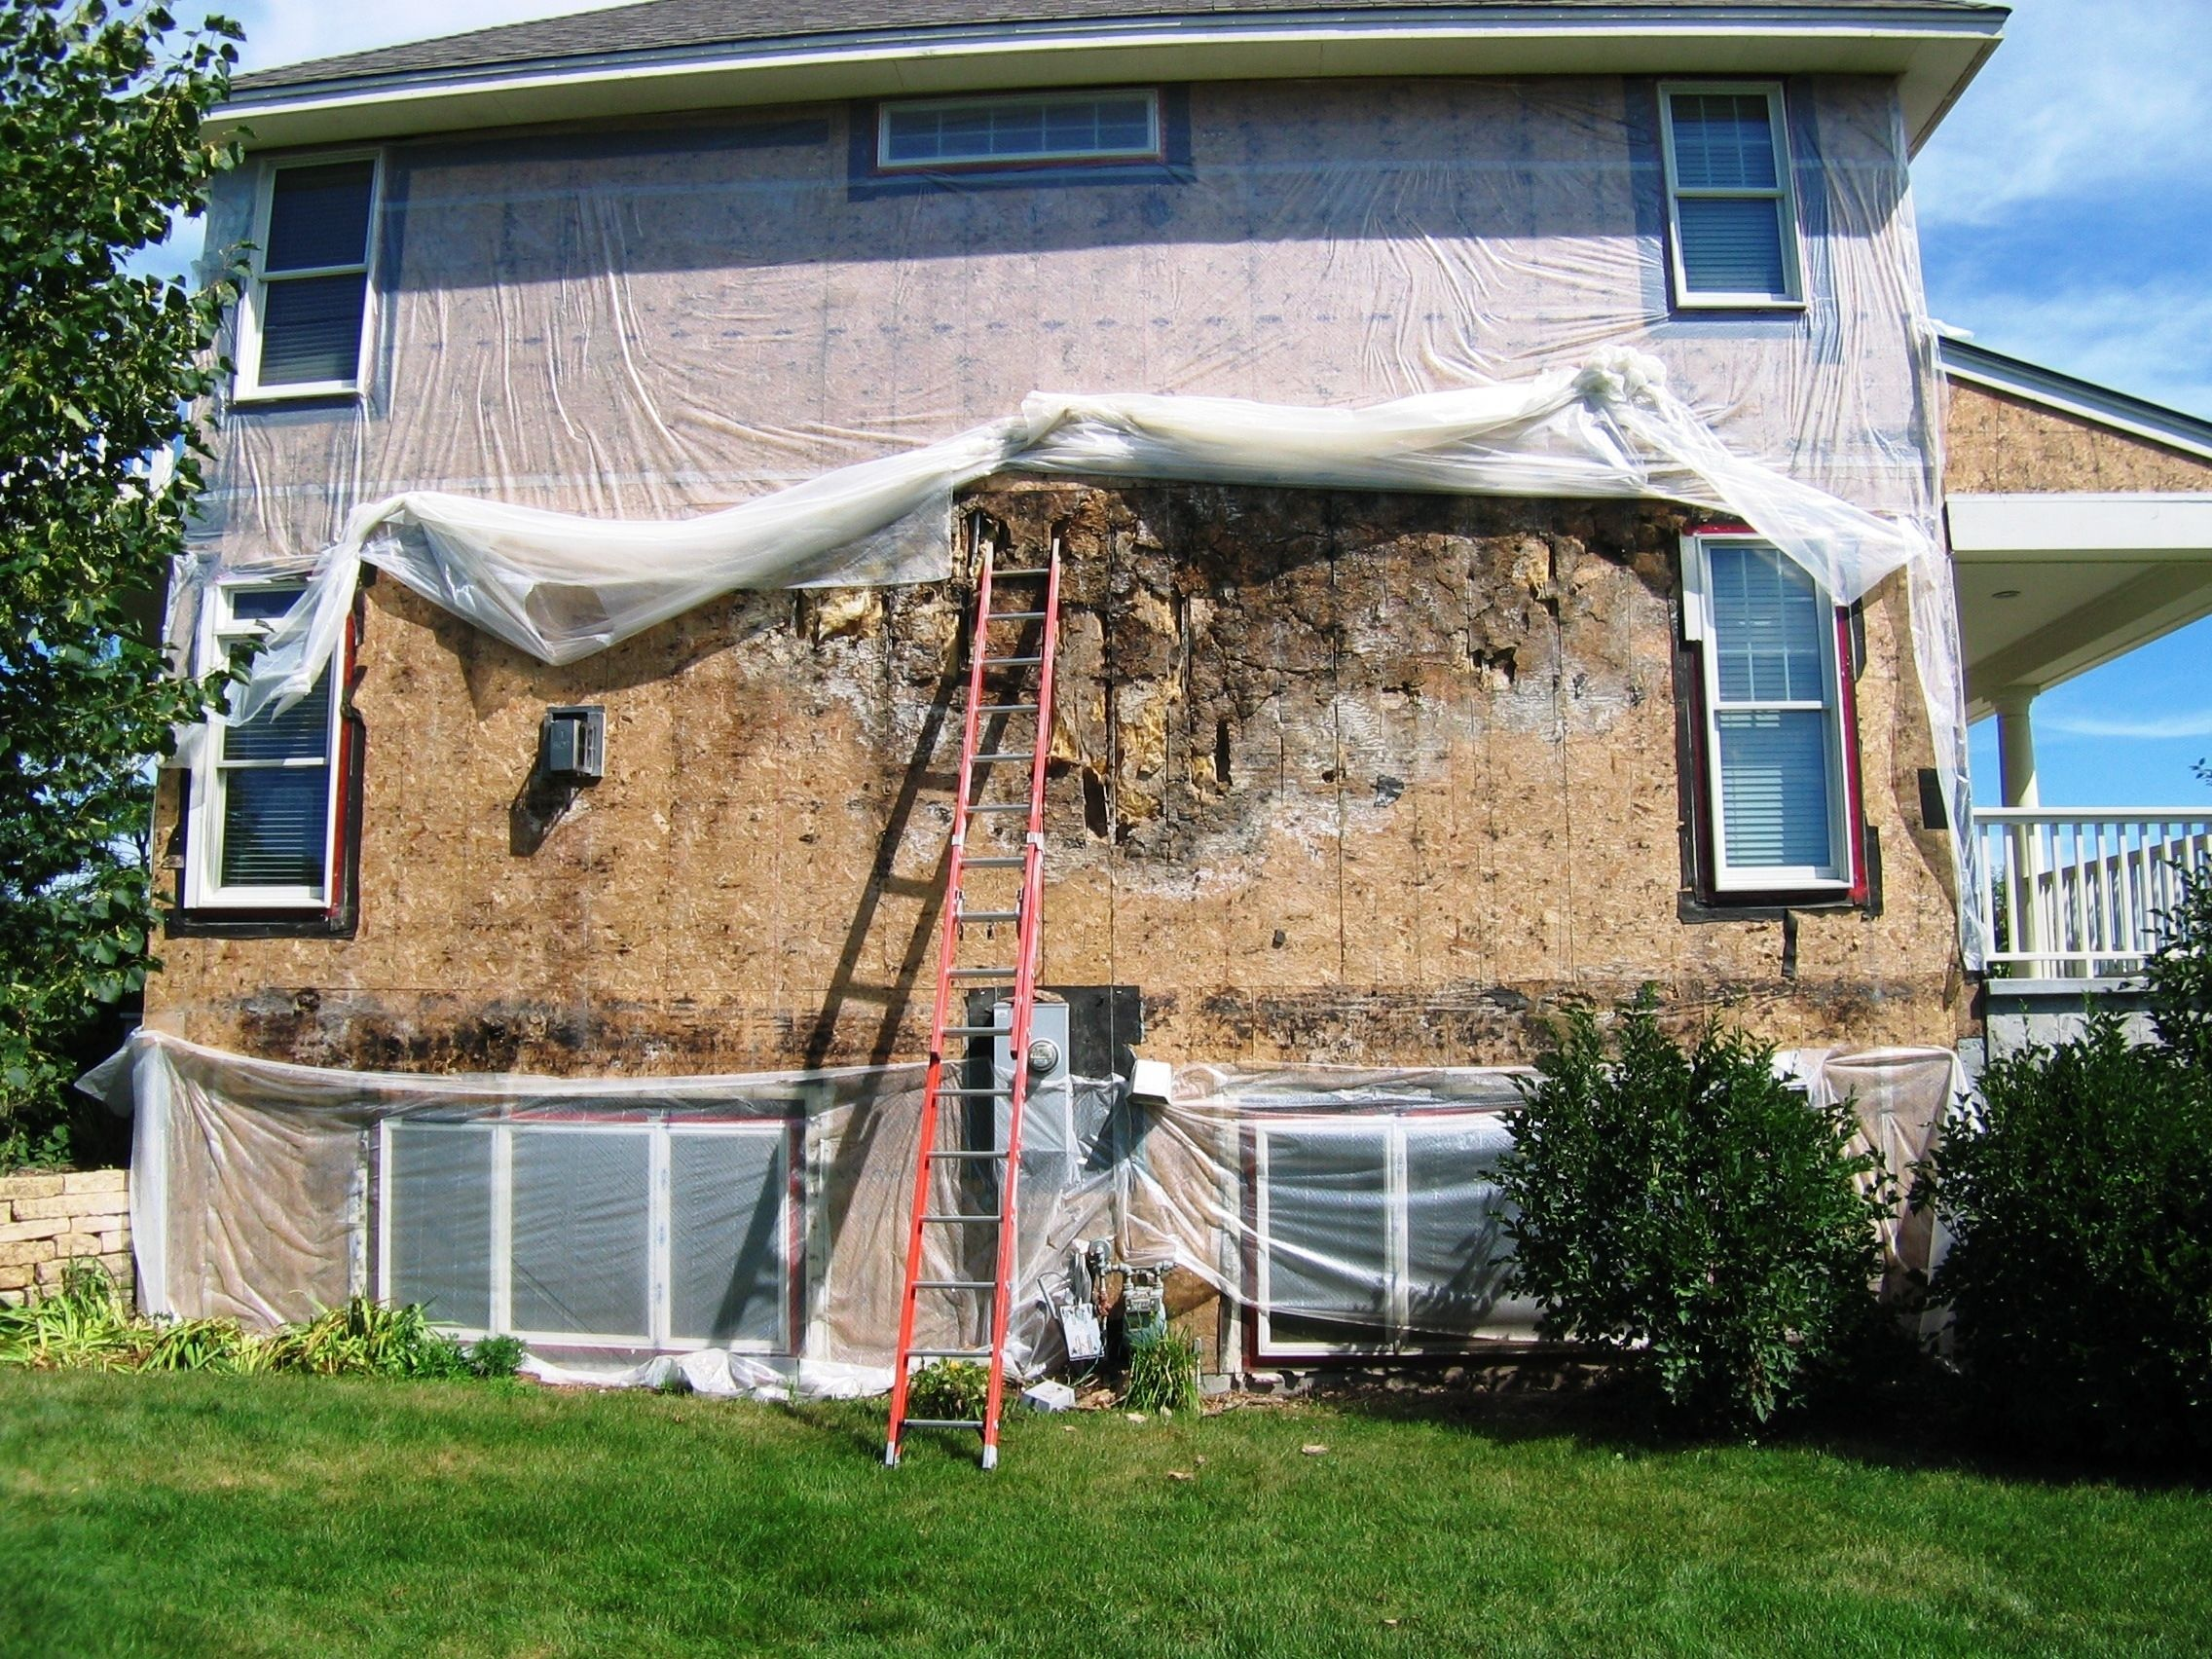 Rotten Osb All Of The Stucco Was Removed From This 10